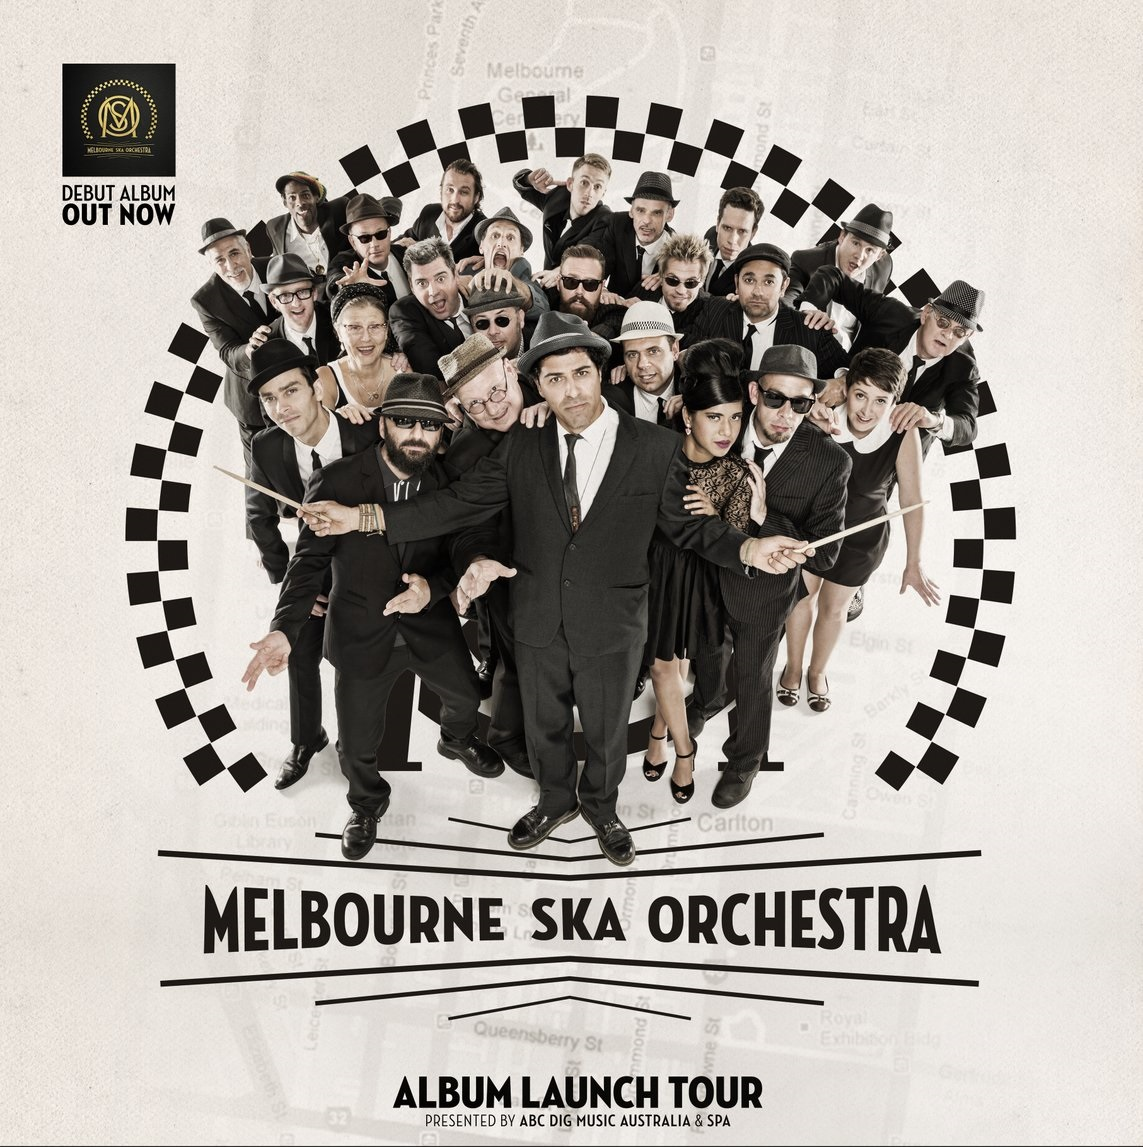 A3TourPoster_MSO_2013-001